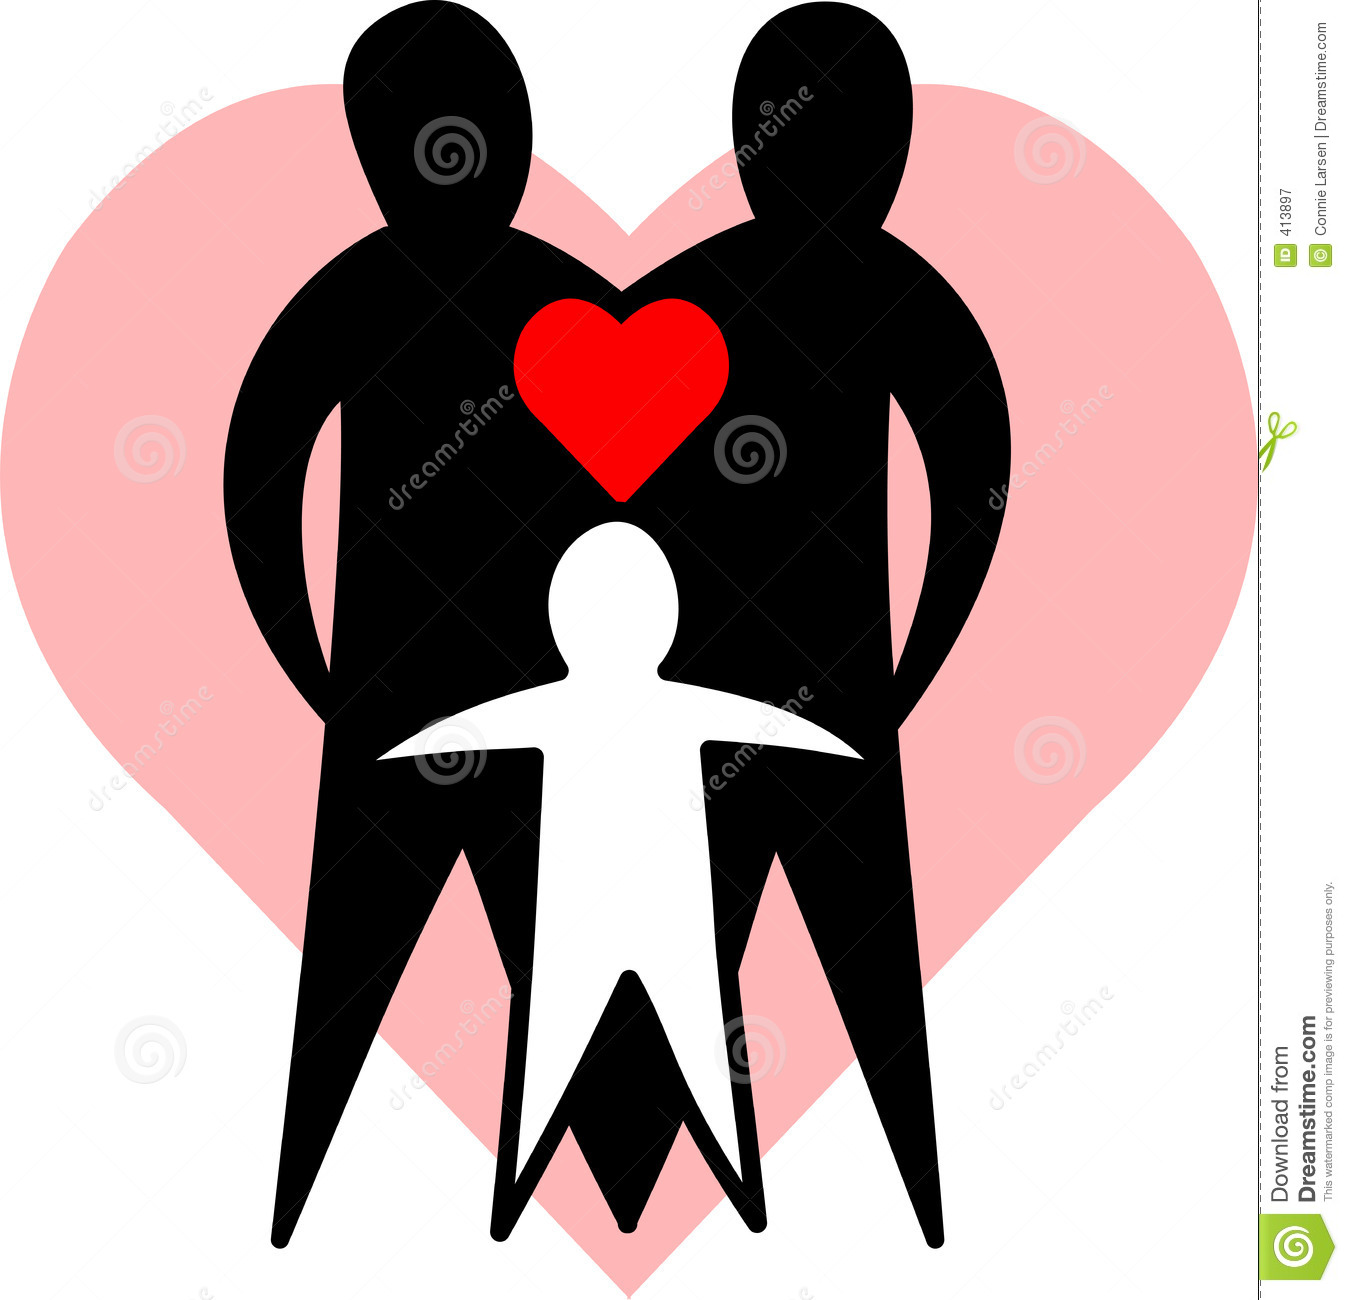 Love and family clipart jpg free library Loving Family Clipart | Clipart Panda - Free Clipart Images jpg free library